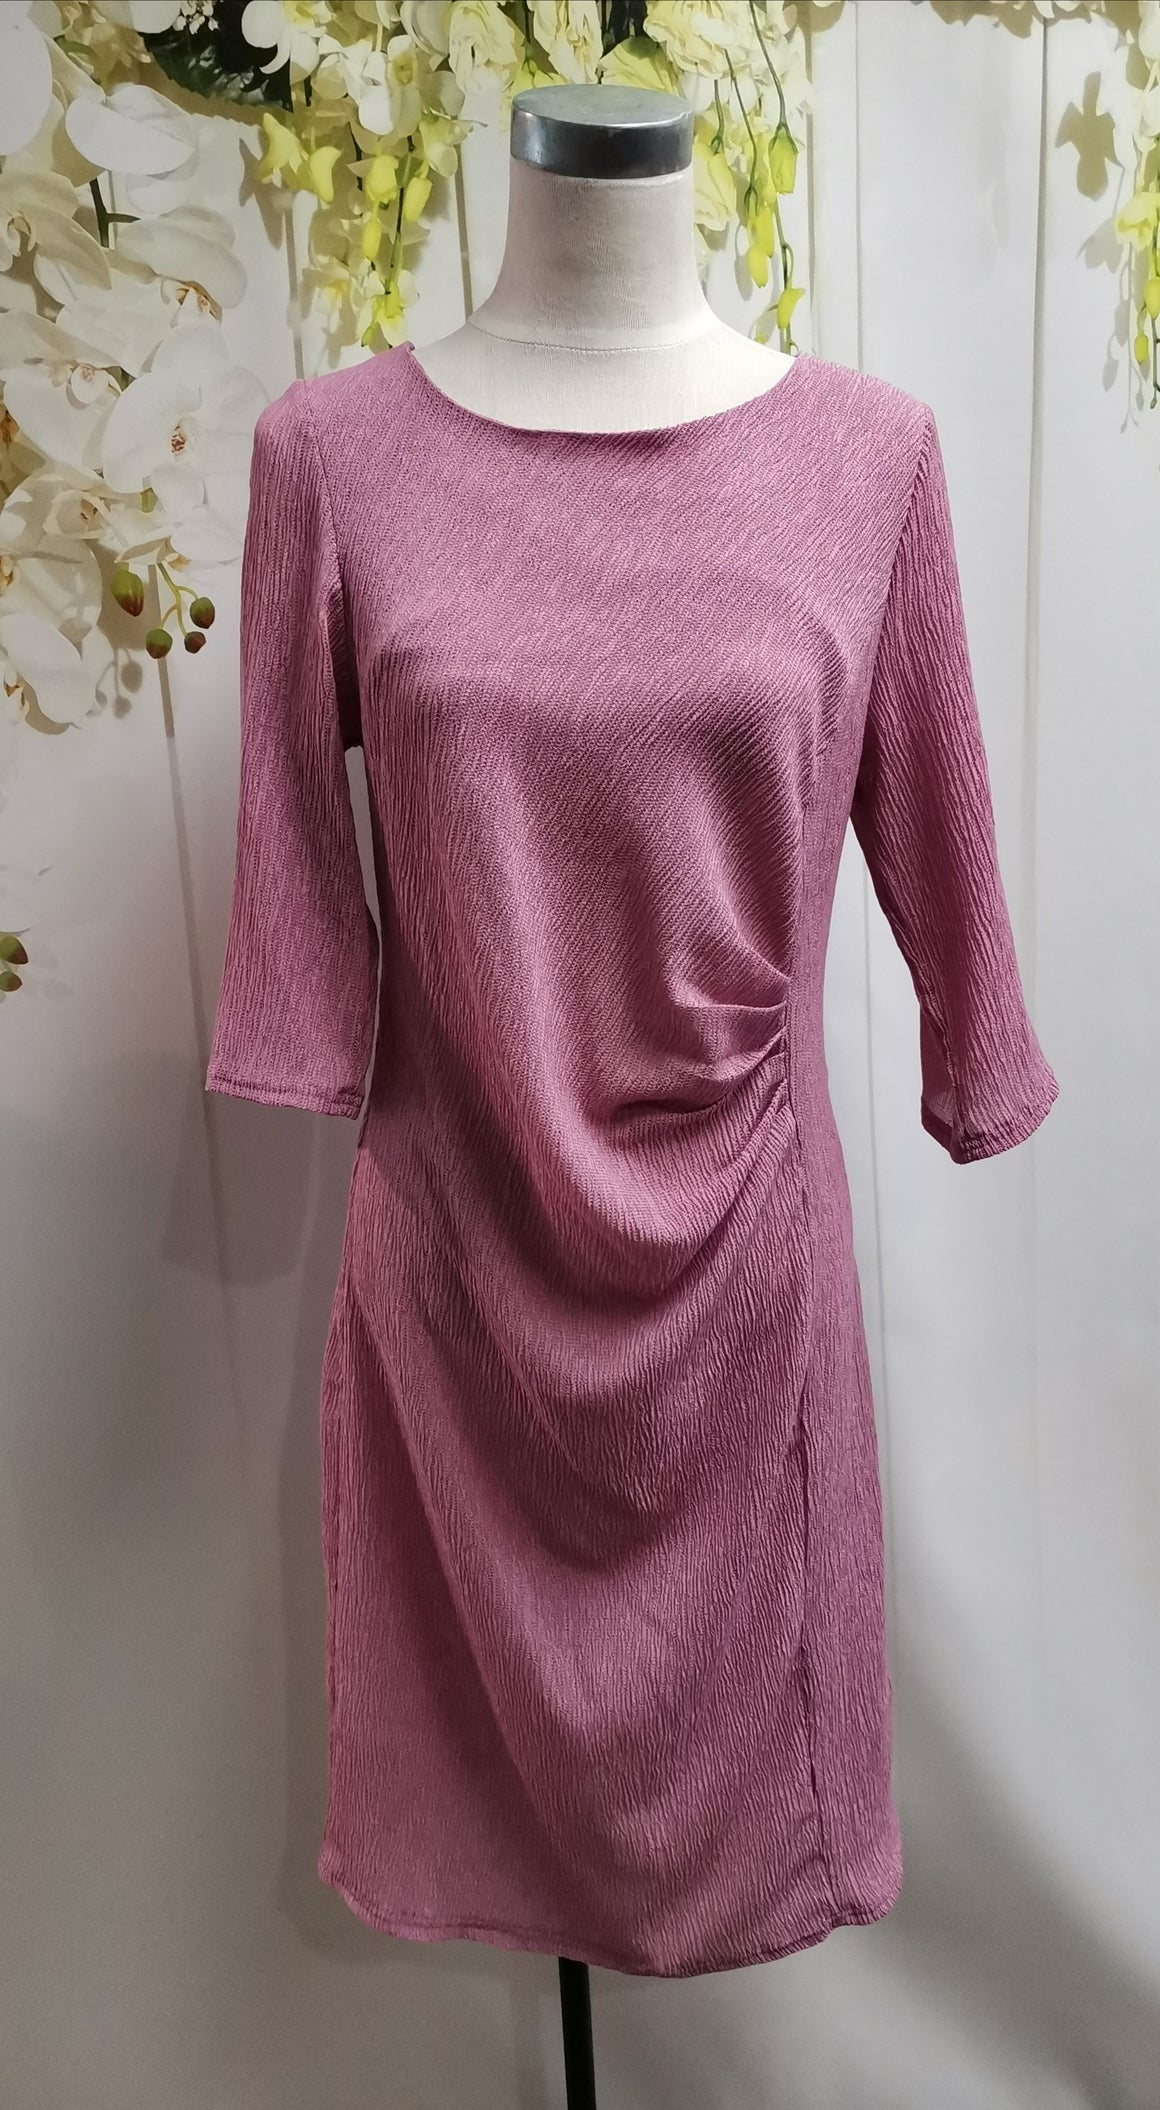 LS Collection Dusky Pink Ruched Dress - Fashion Focus